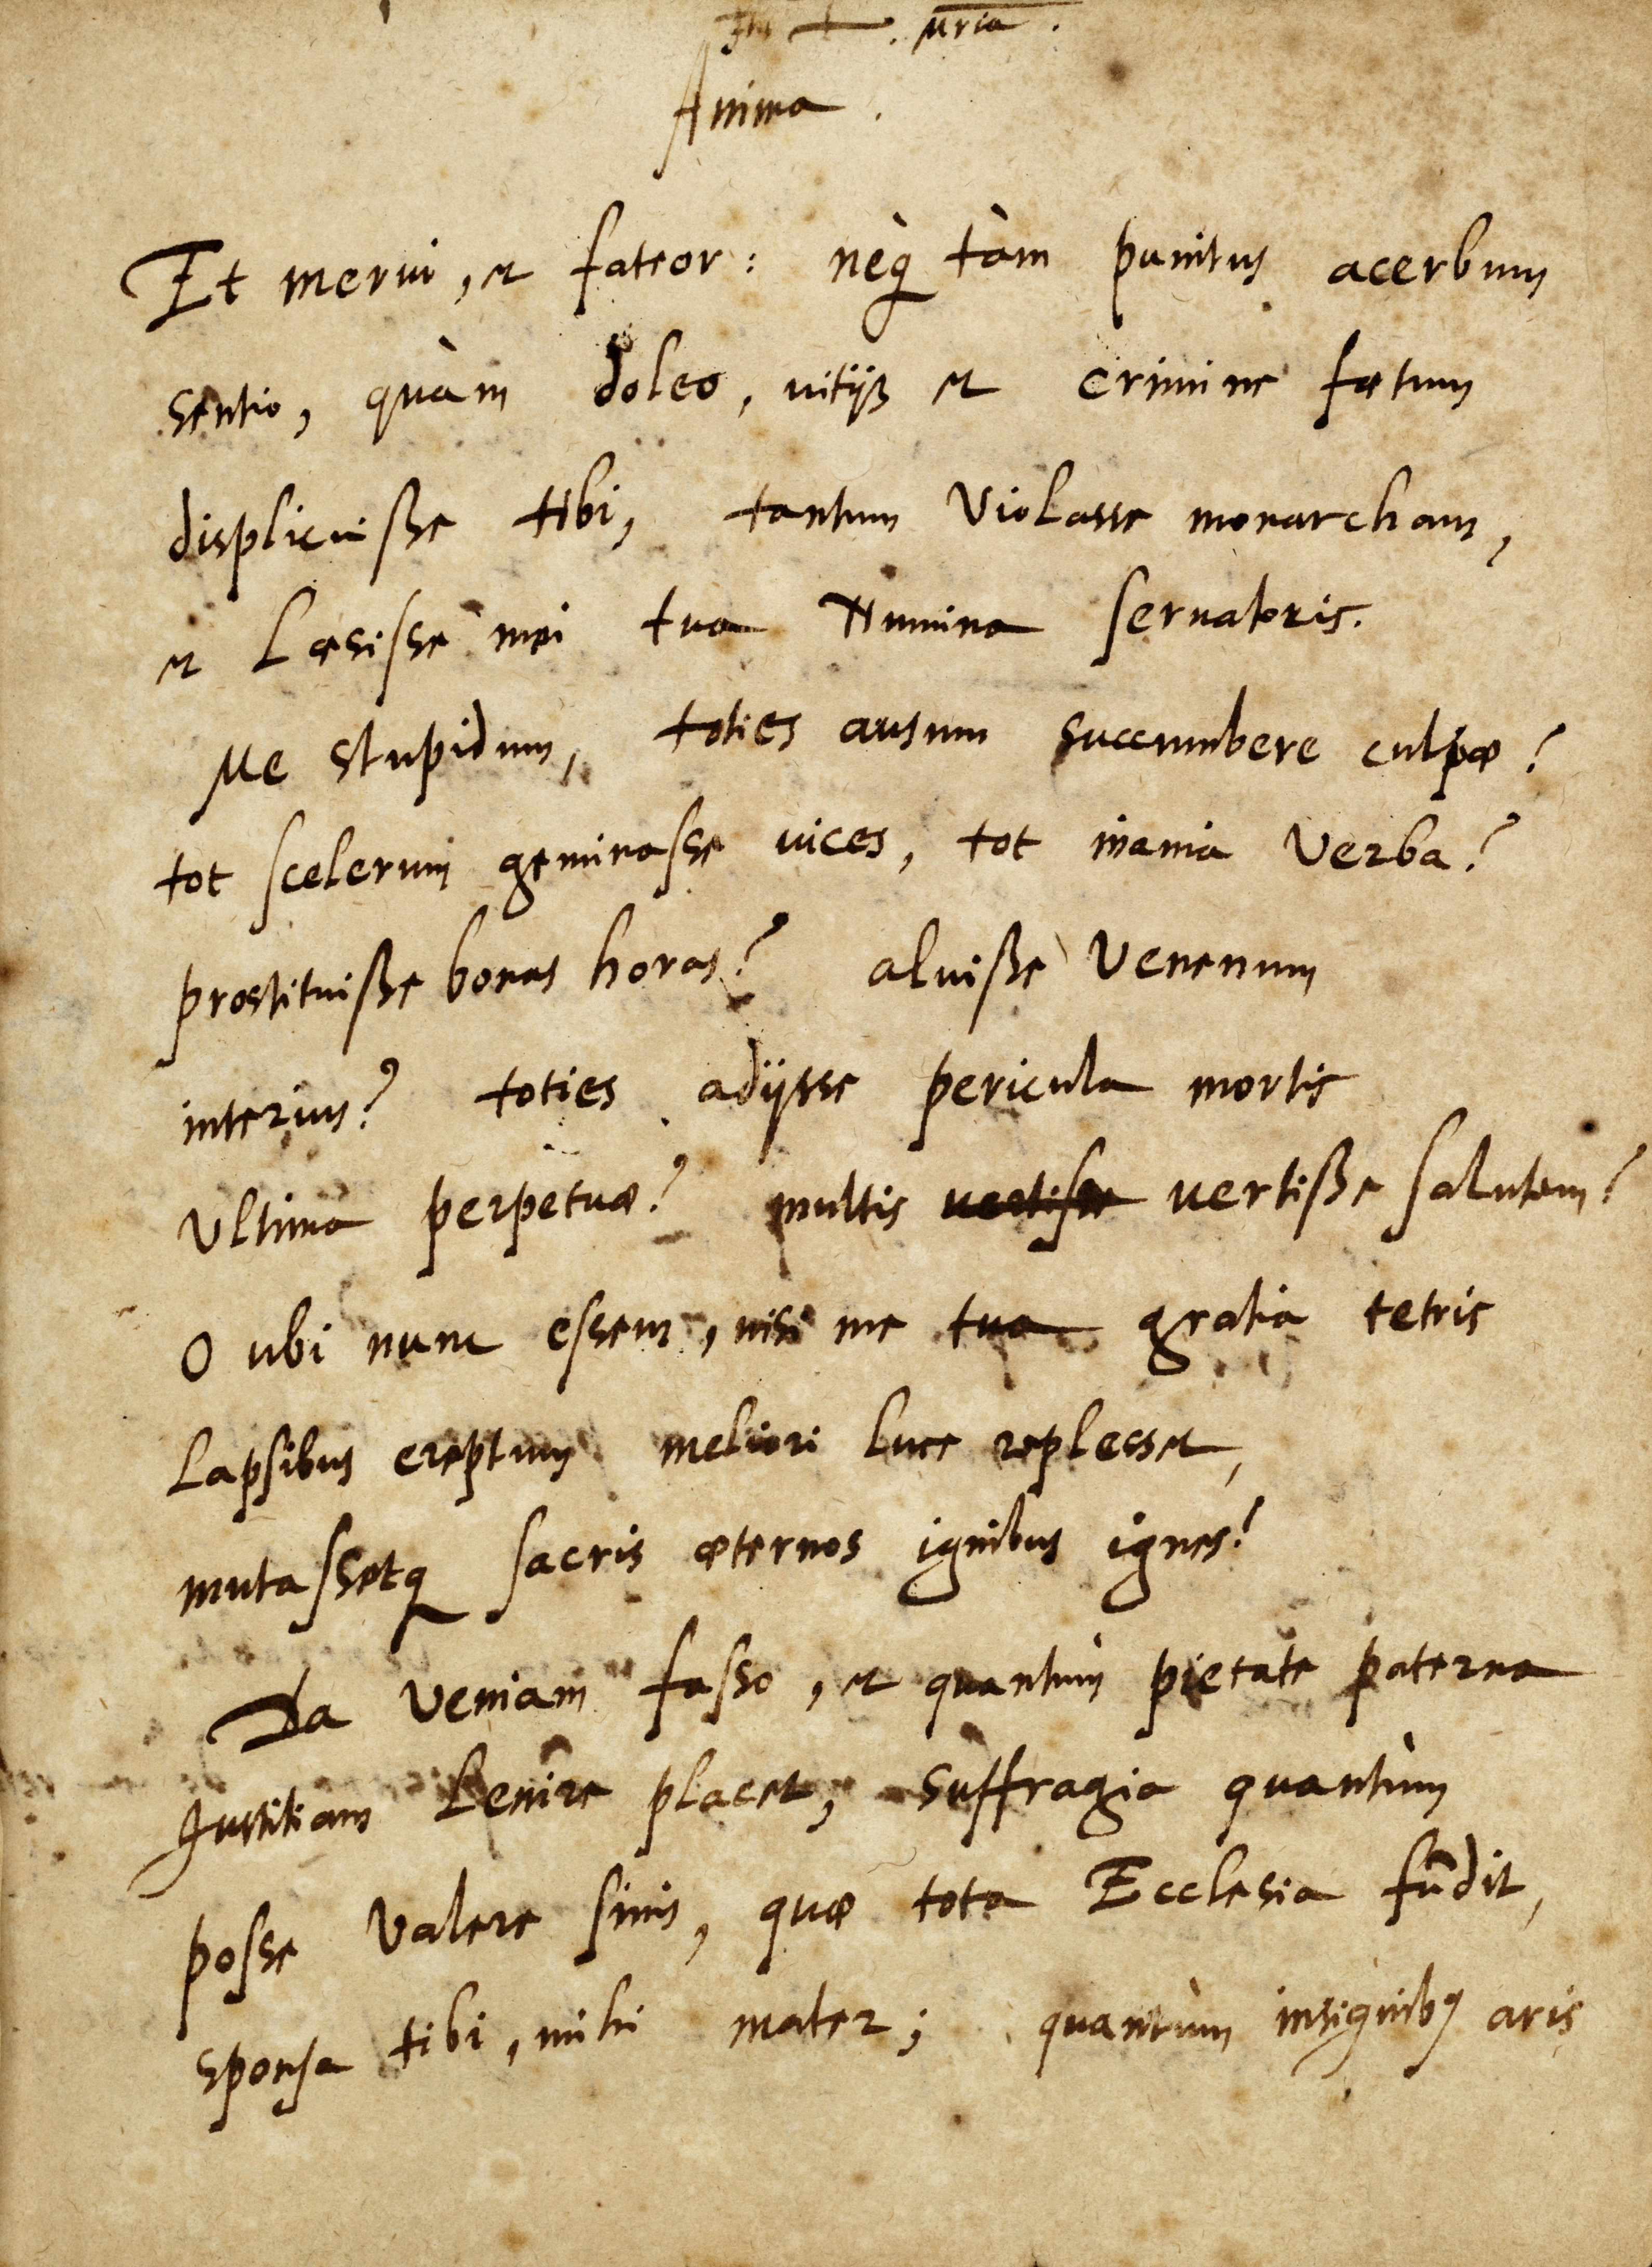 Document in Latin in what seems to be italic style handwriting, using ink that appears dark brown. The parchment has brown foxing.